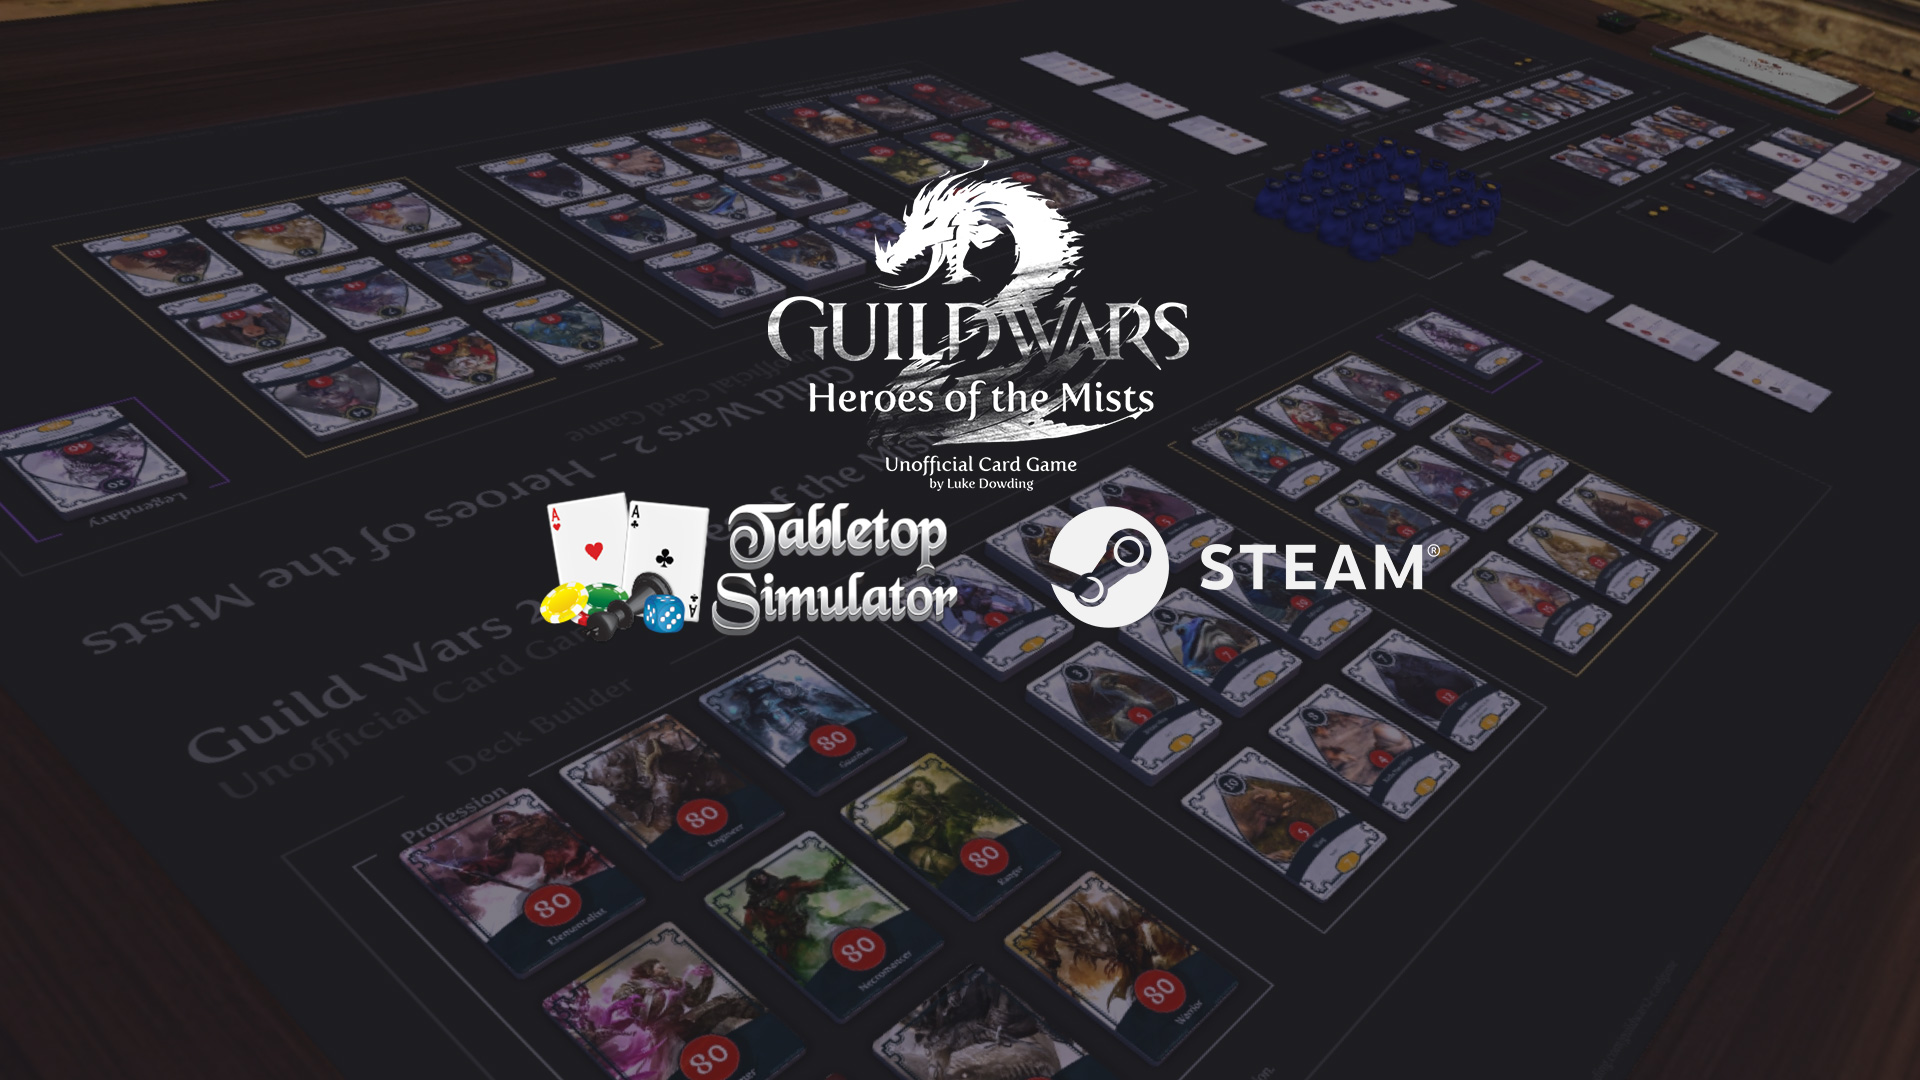 Guild wars 2 Tabletop simulator